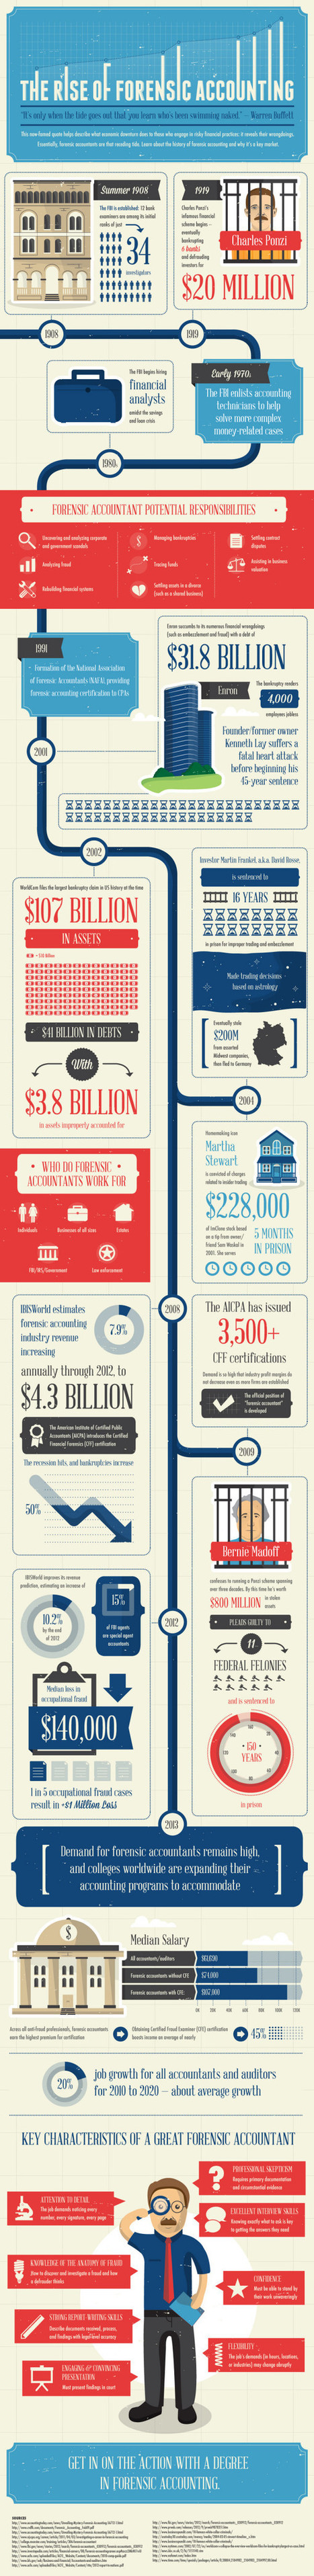 The Rise of Forensic Accounting [Infographic] | Forensic Auditing | Scoop.it